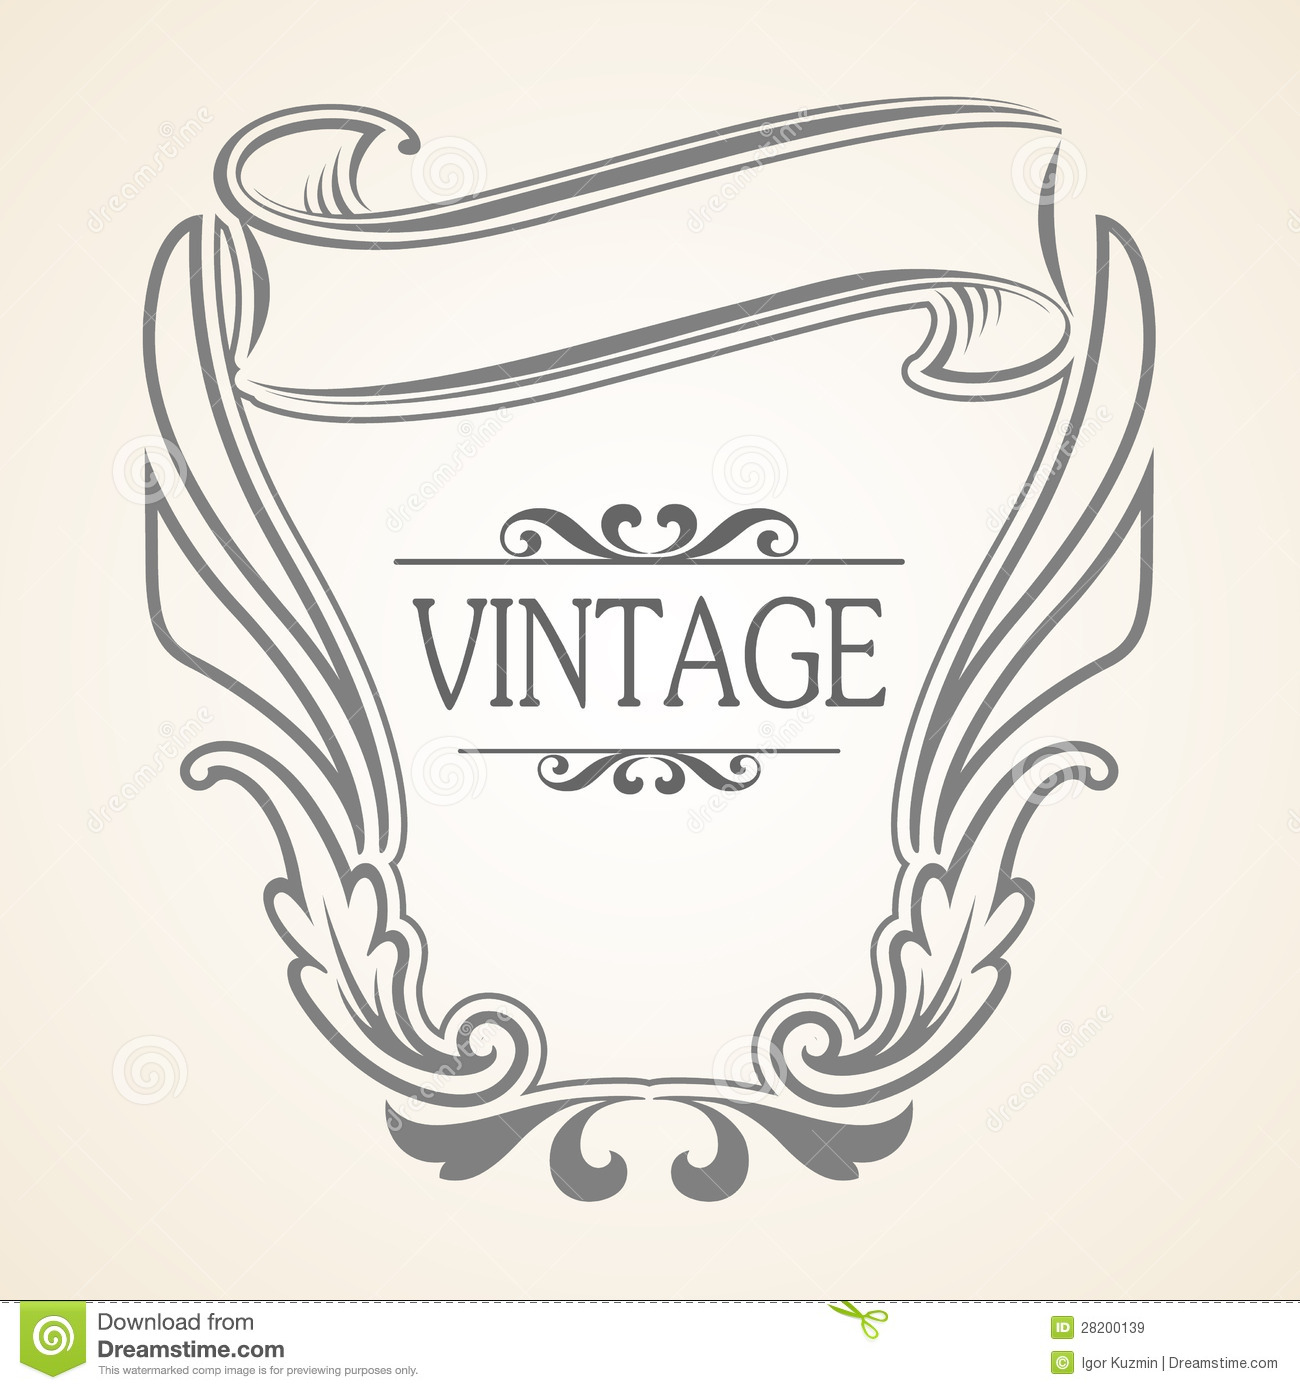 Vector Vintage frame stock vector. Illustration of flower - 28200139